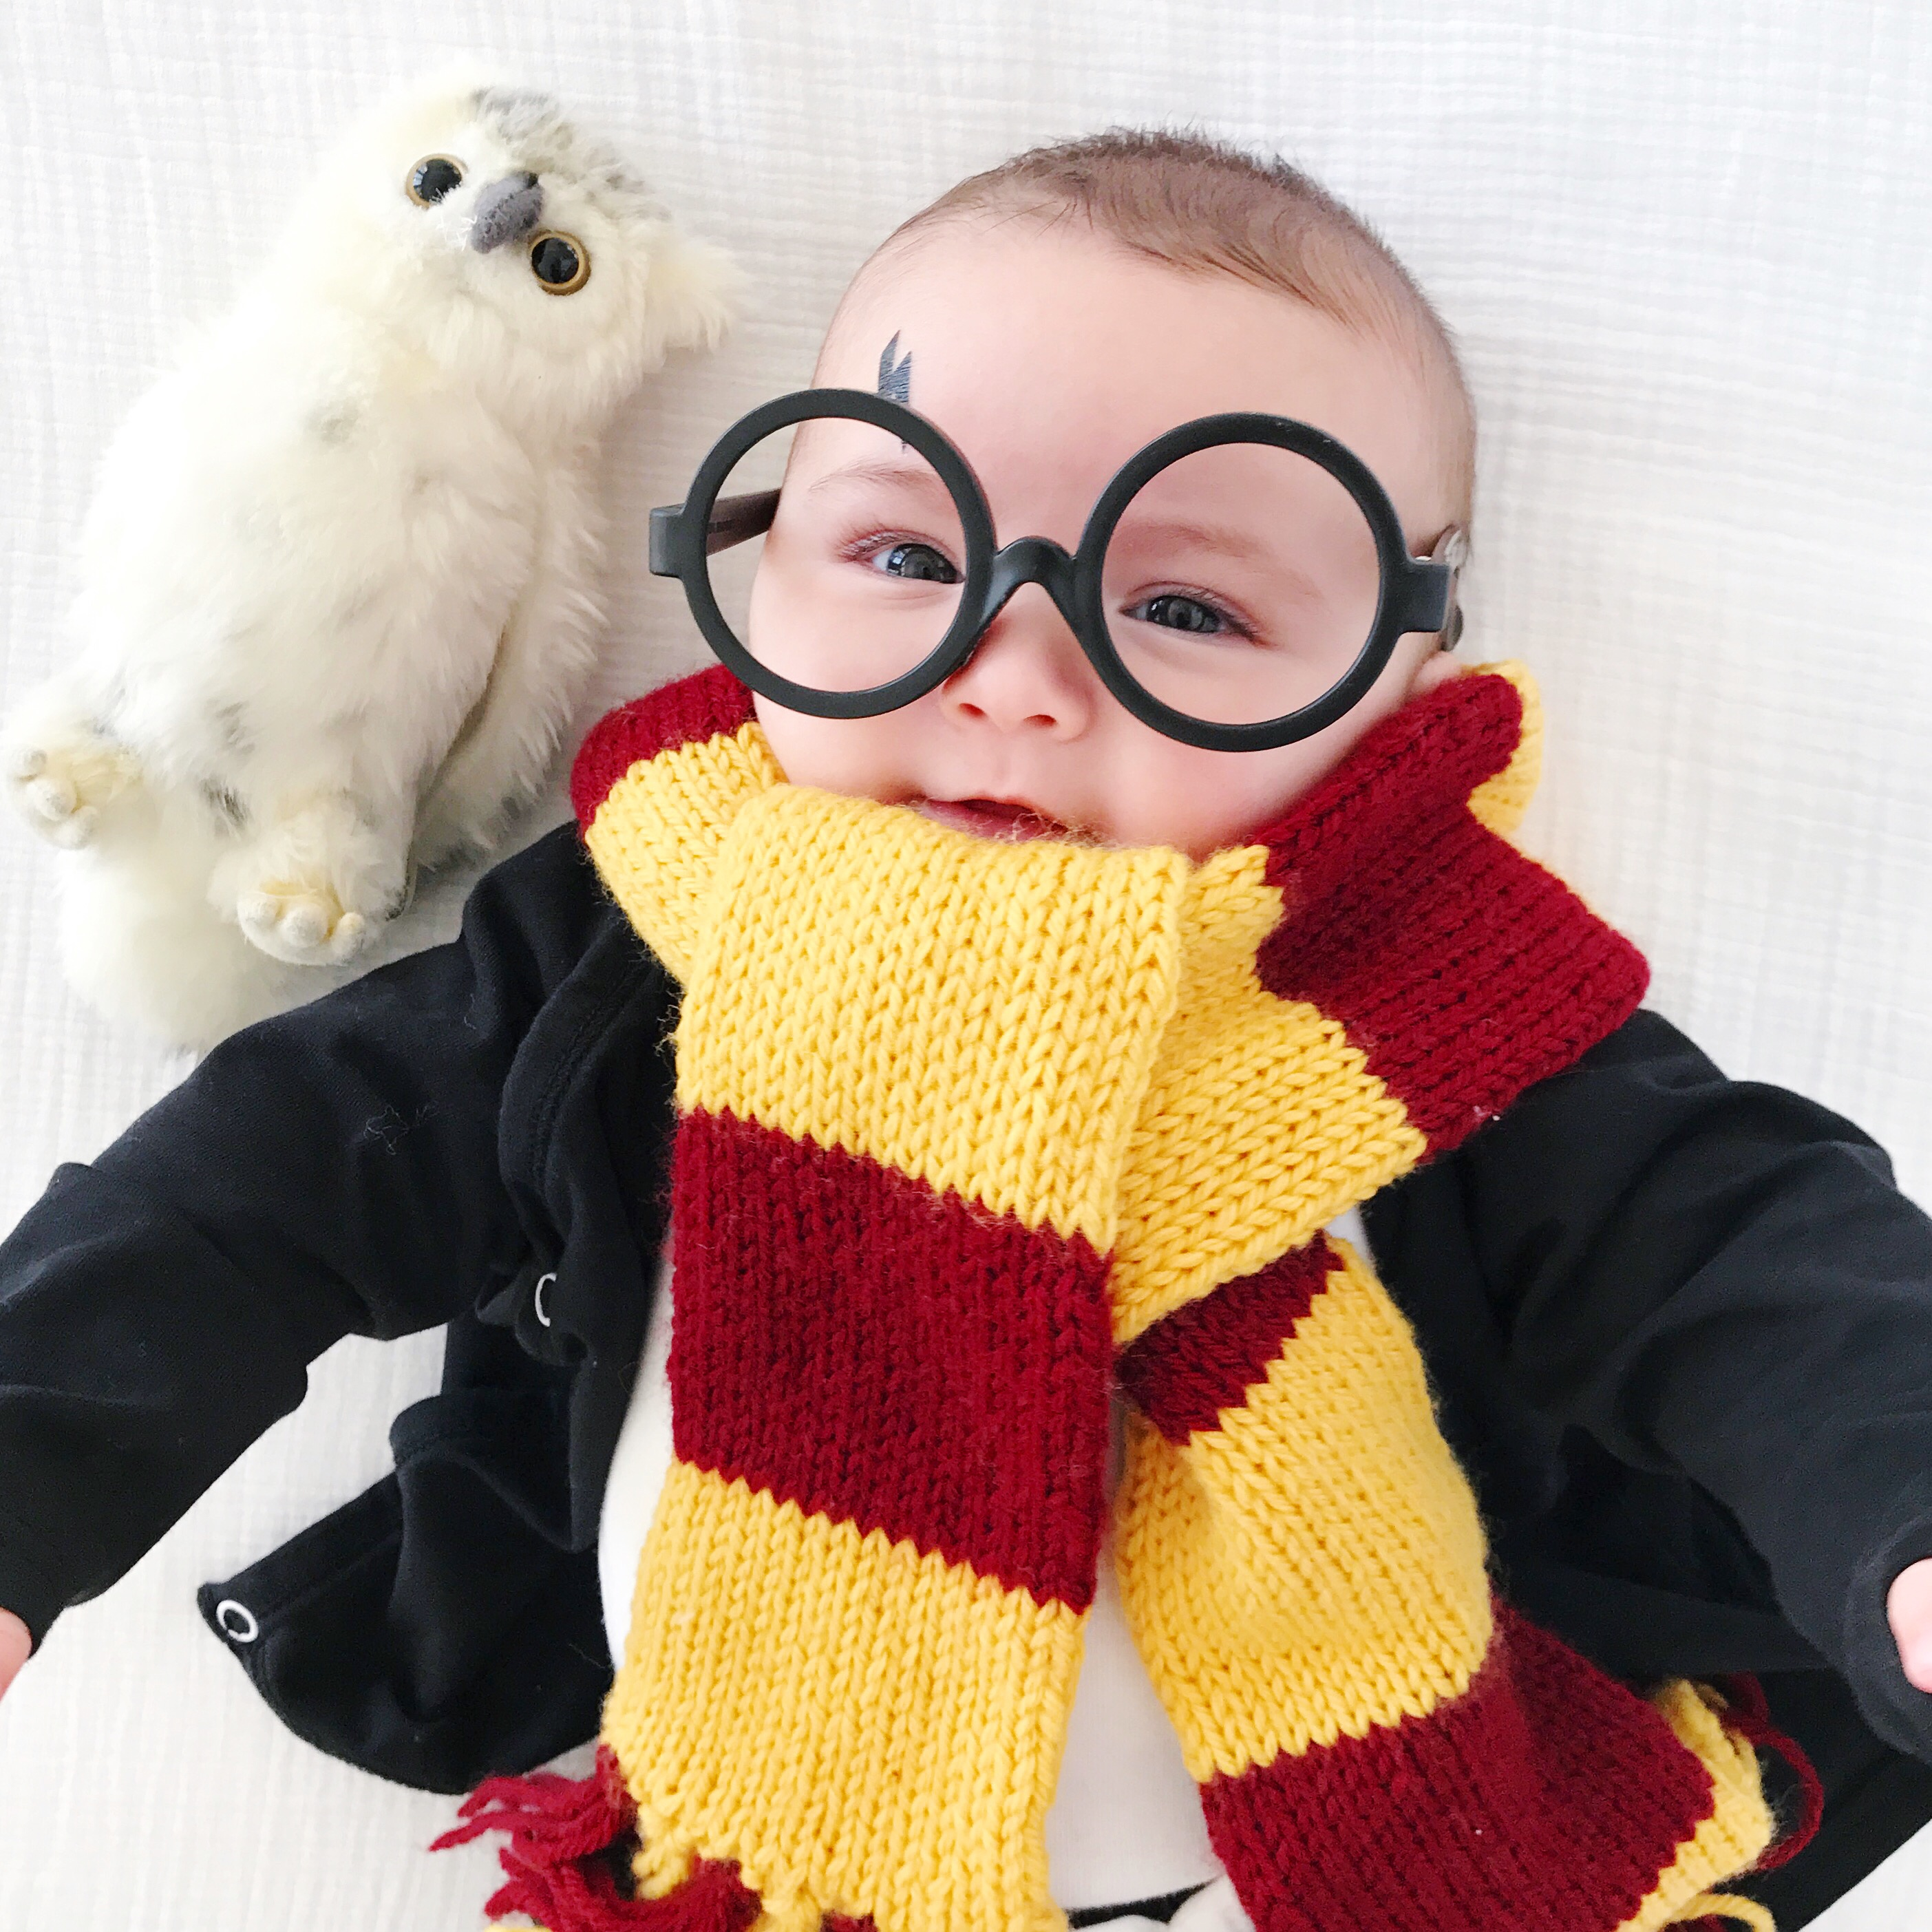 Scarf pattern linked below & DIY BABY HARRY POTTER COSTUME